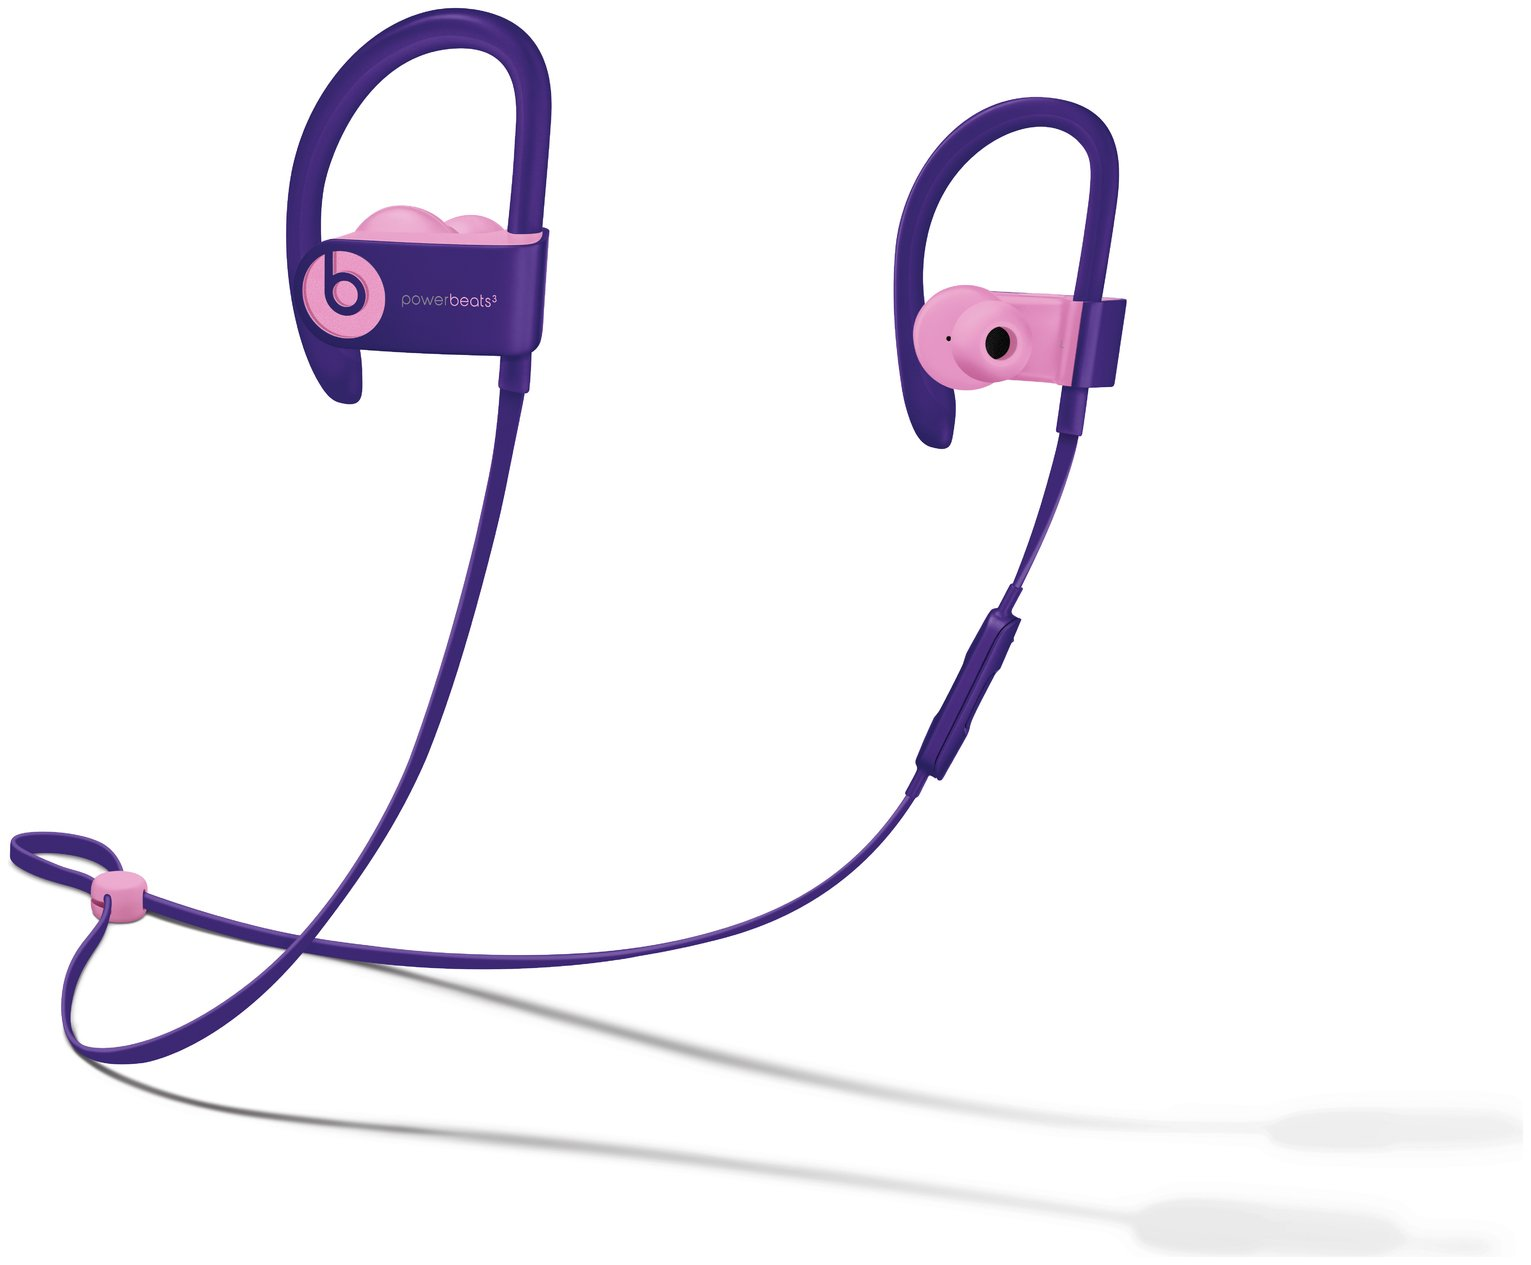 Beats by Dre Powerbeats 3 Wireless Earphones - Pop Violet